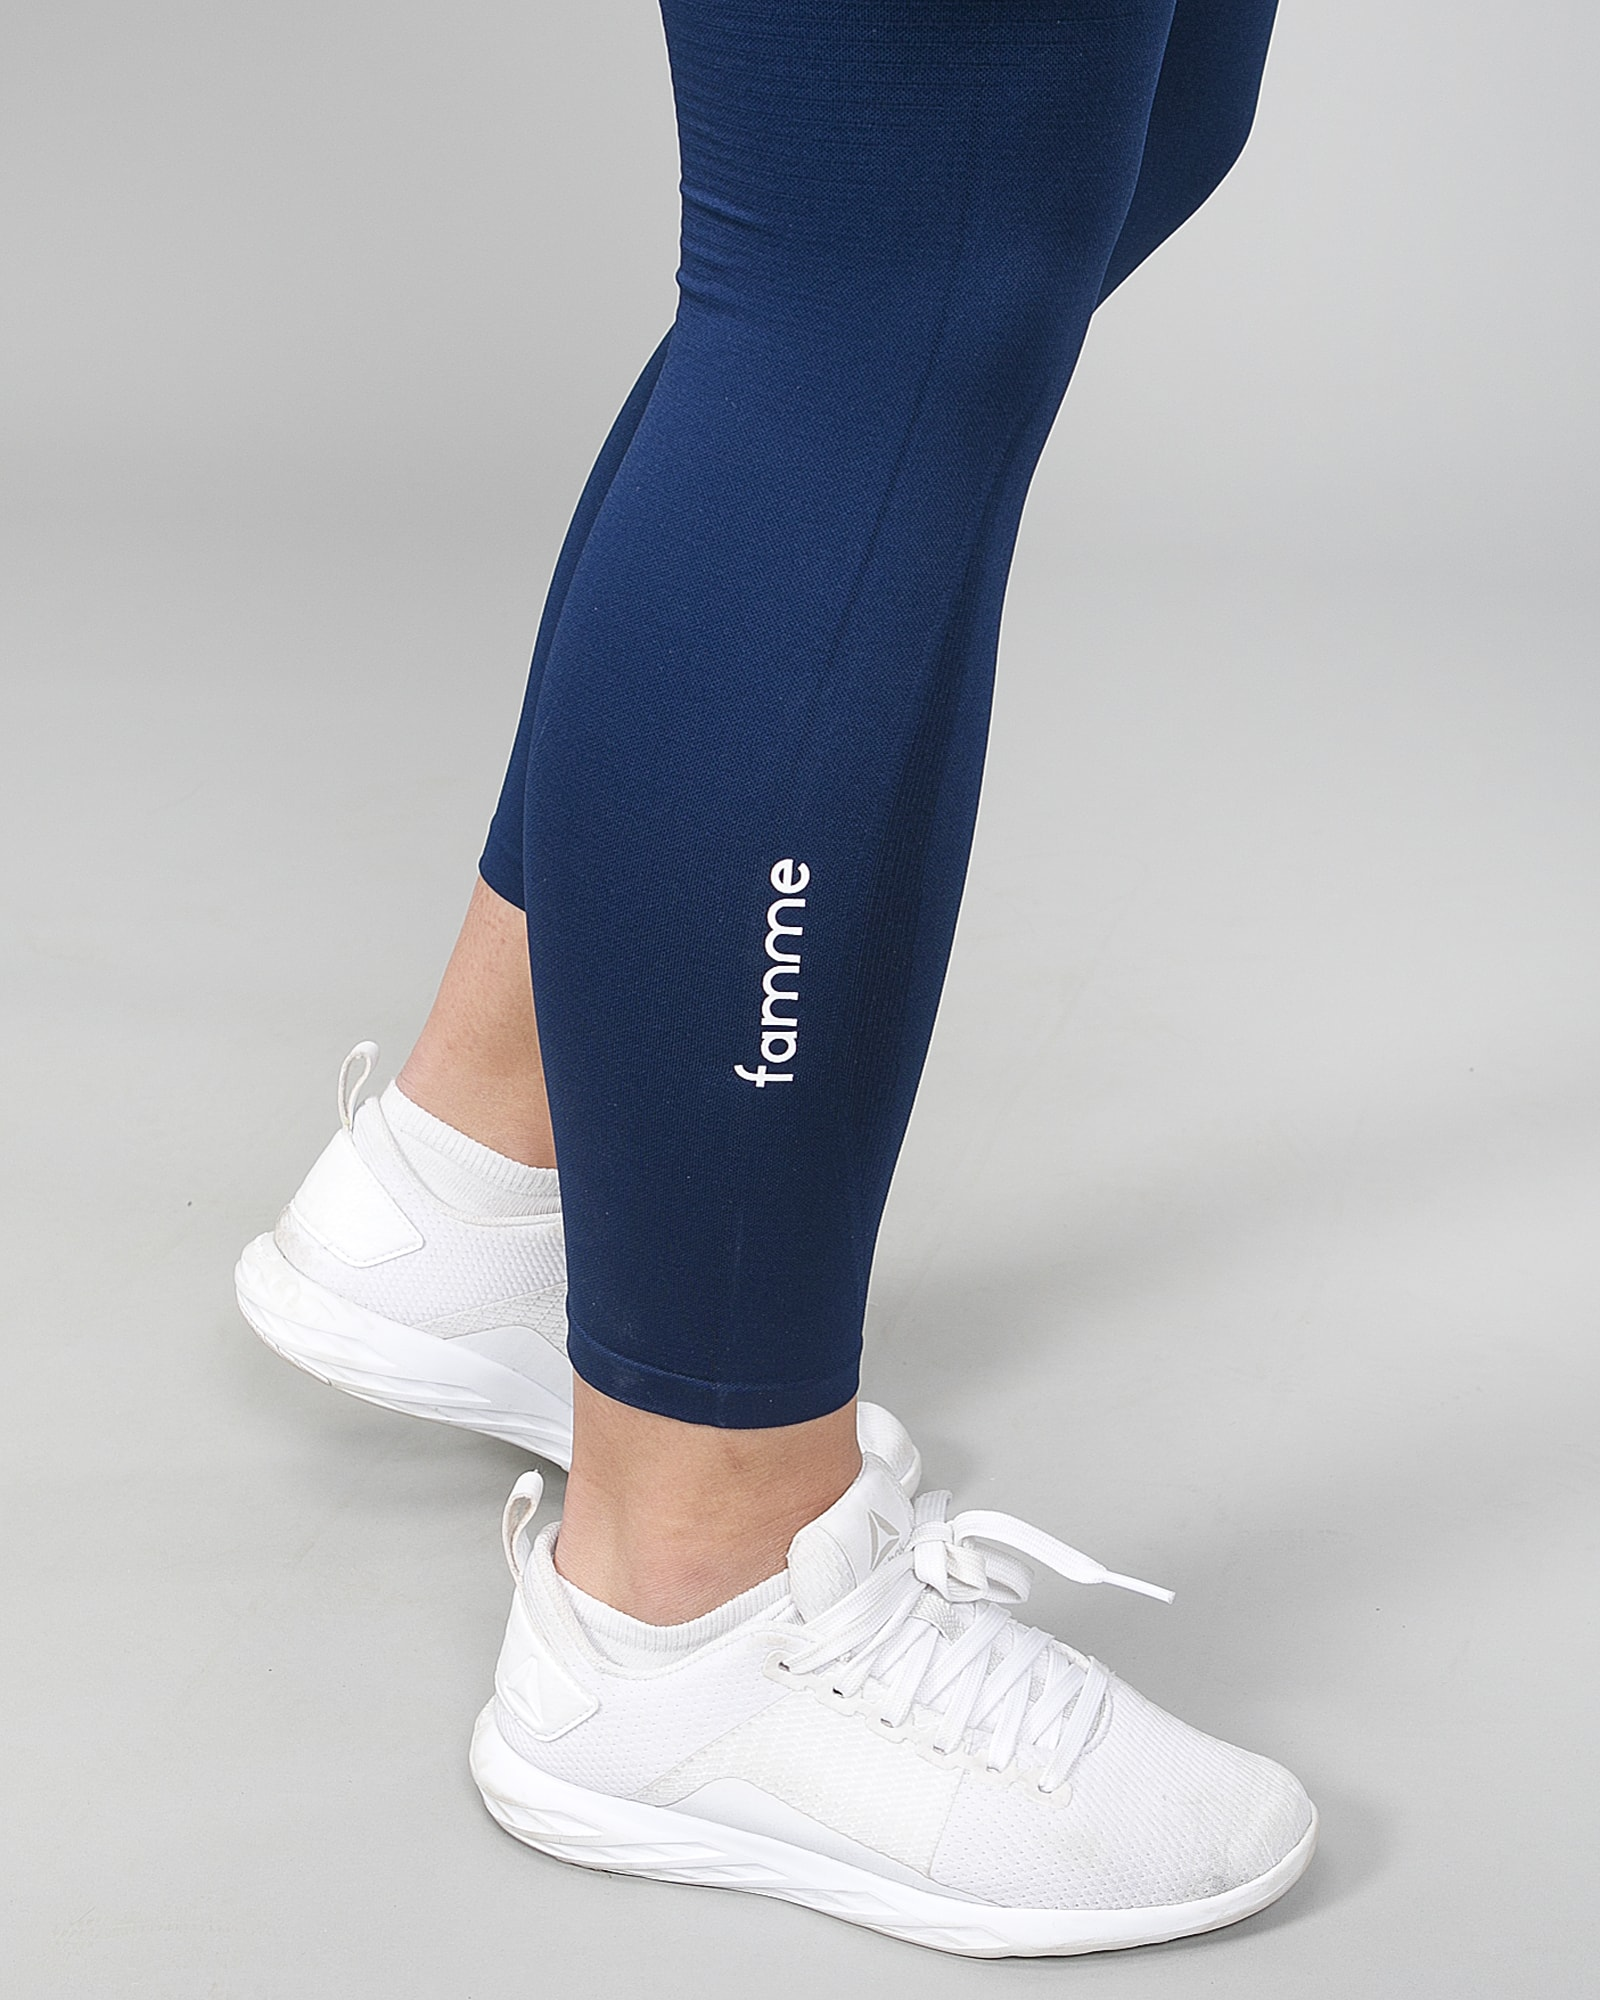 Famme Vortex Legging - Navy Blue vhwl-nv f